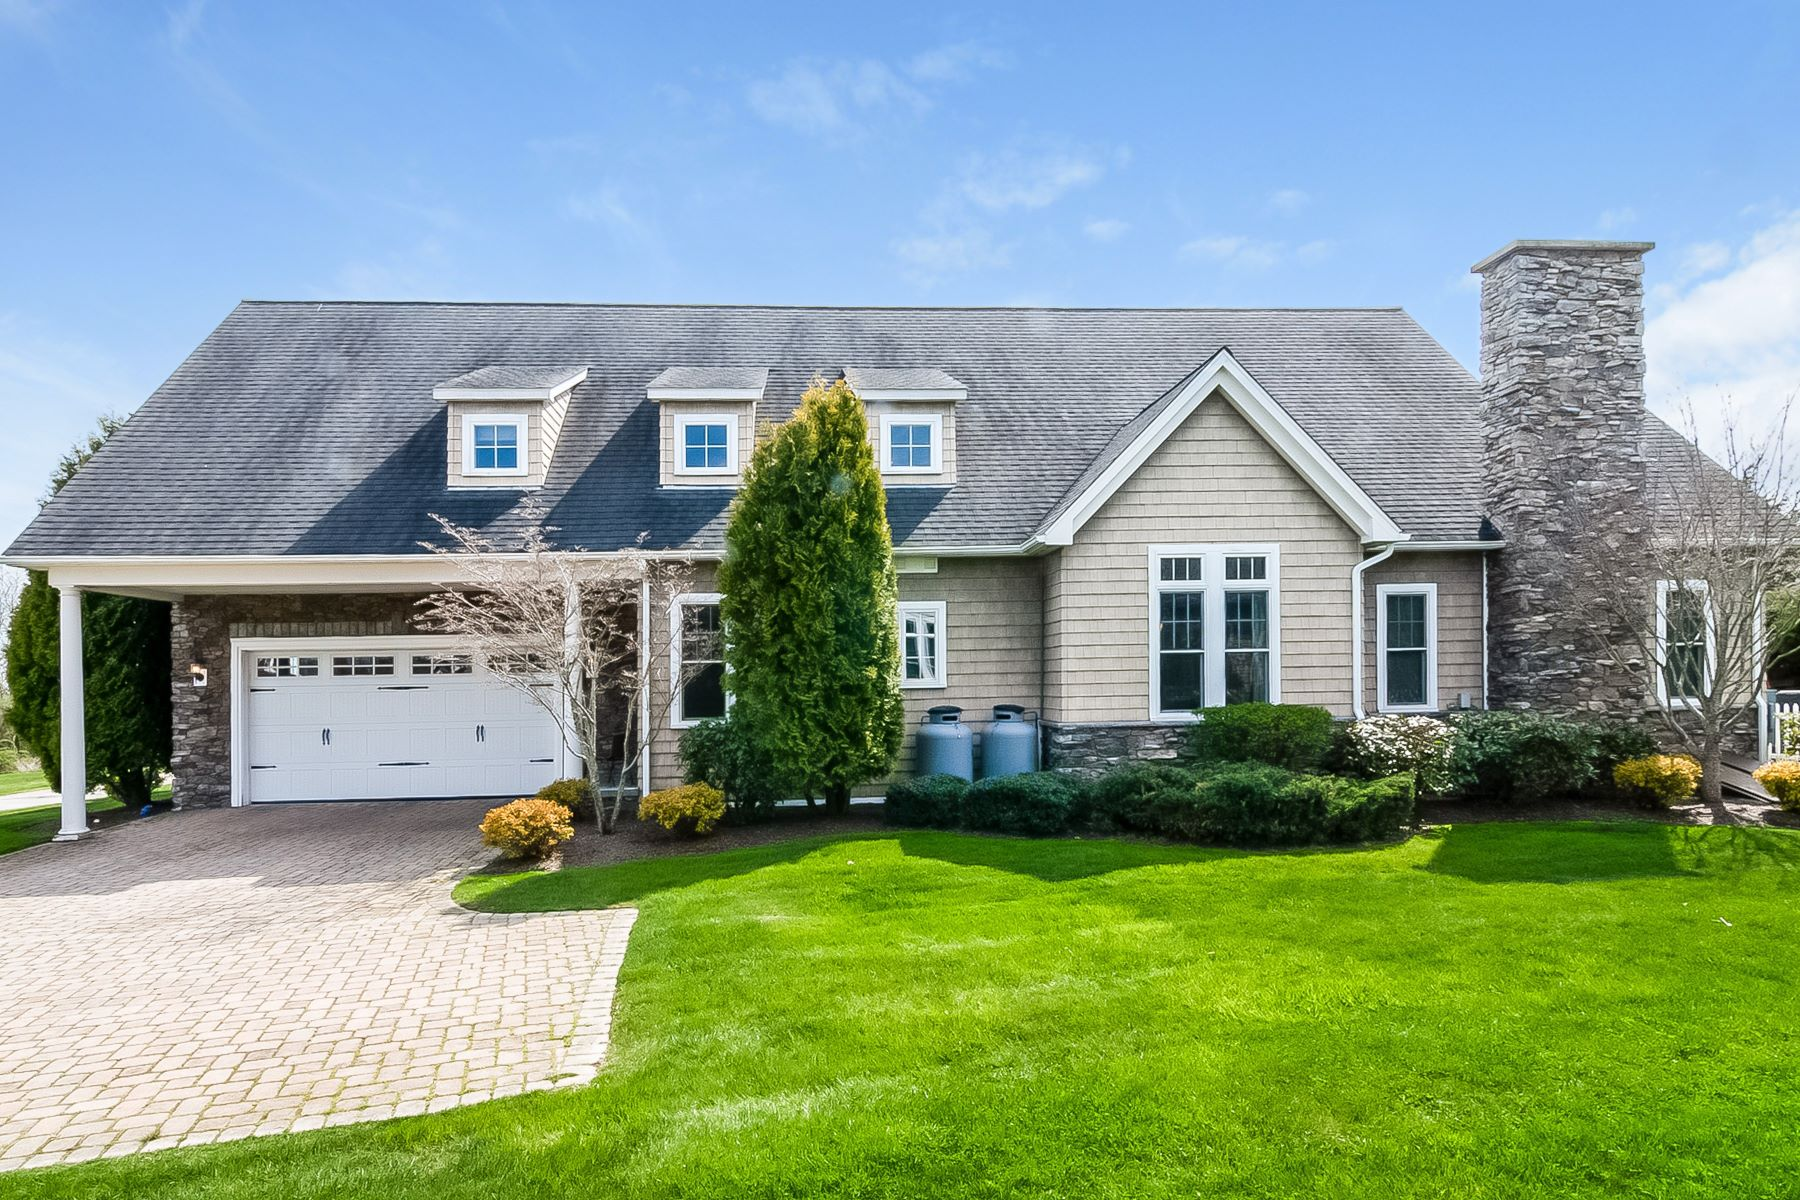 condominiums for Sale at 4 Spyglass Cir, #D, Hopkinton, RI 4 Spyglass Cir D, Hopkinton, Rhode Island 02832 United States